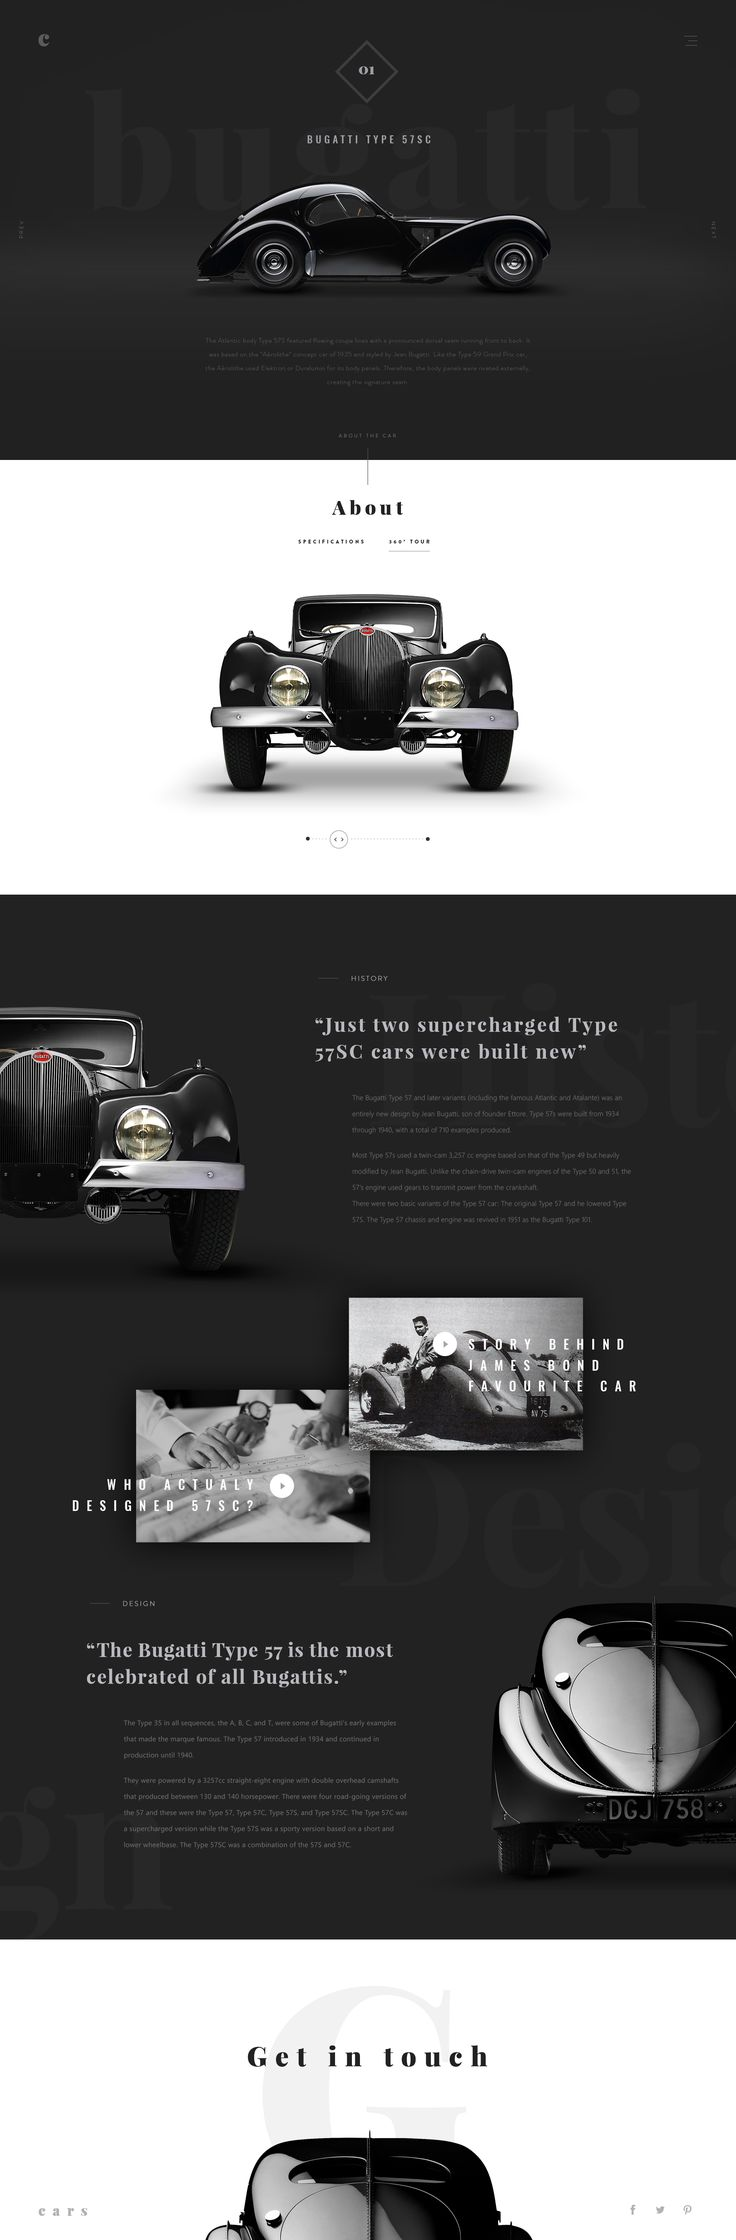 retro car website design